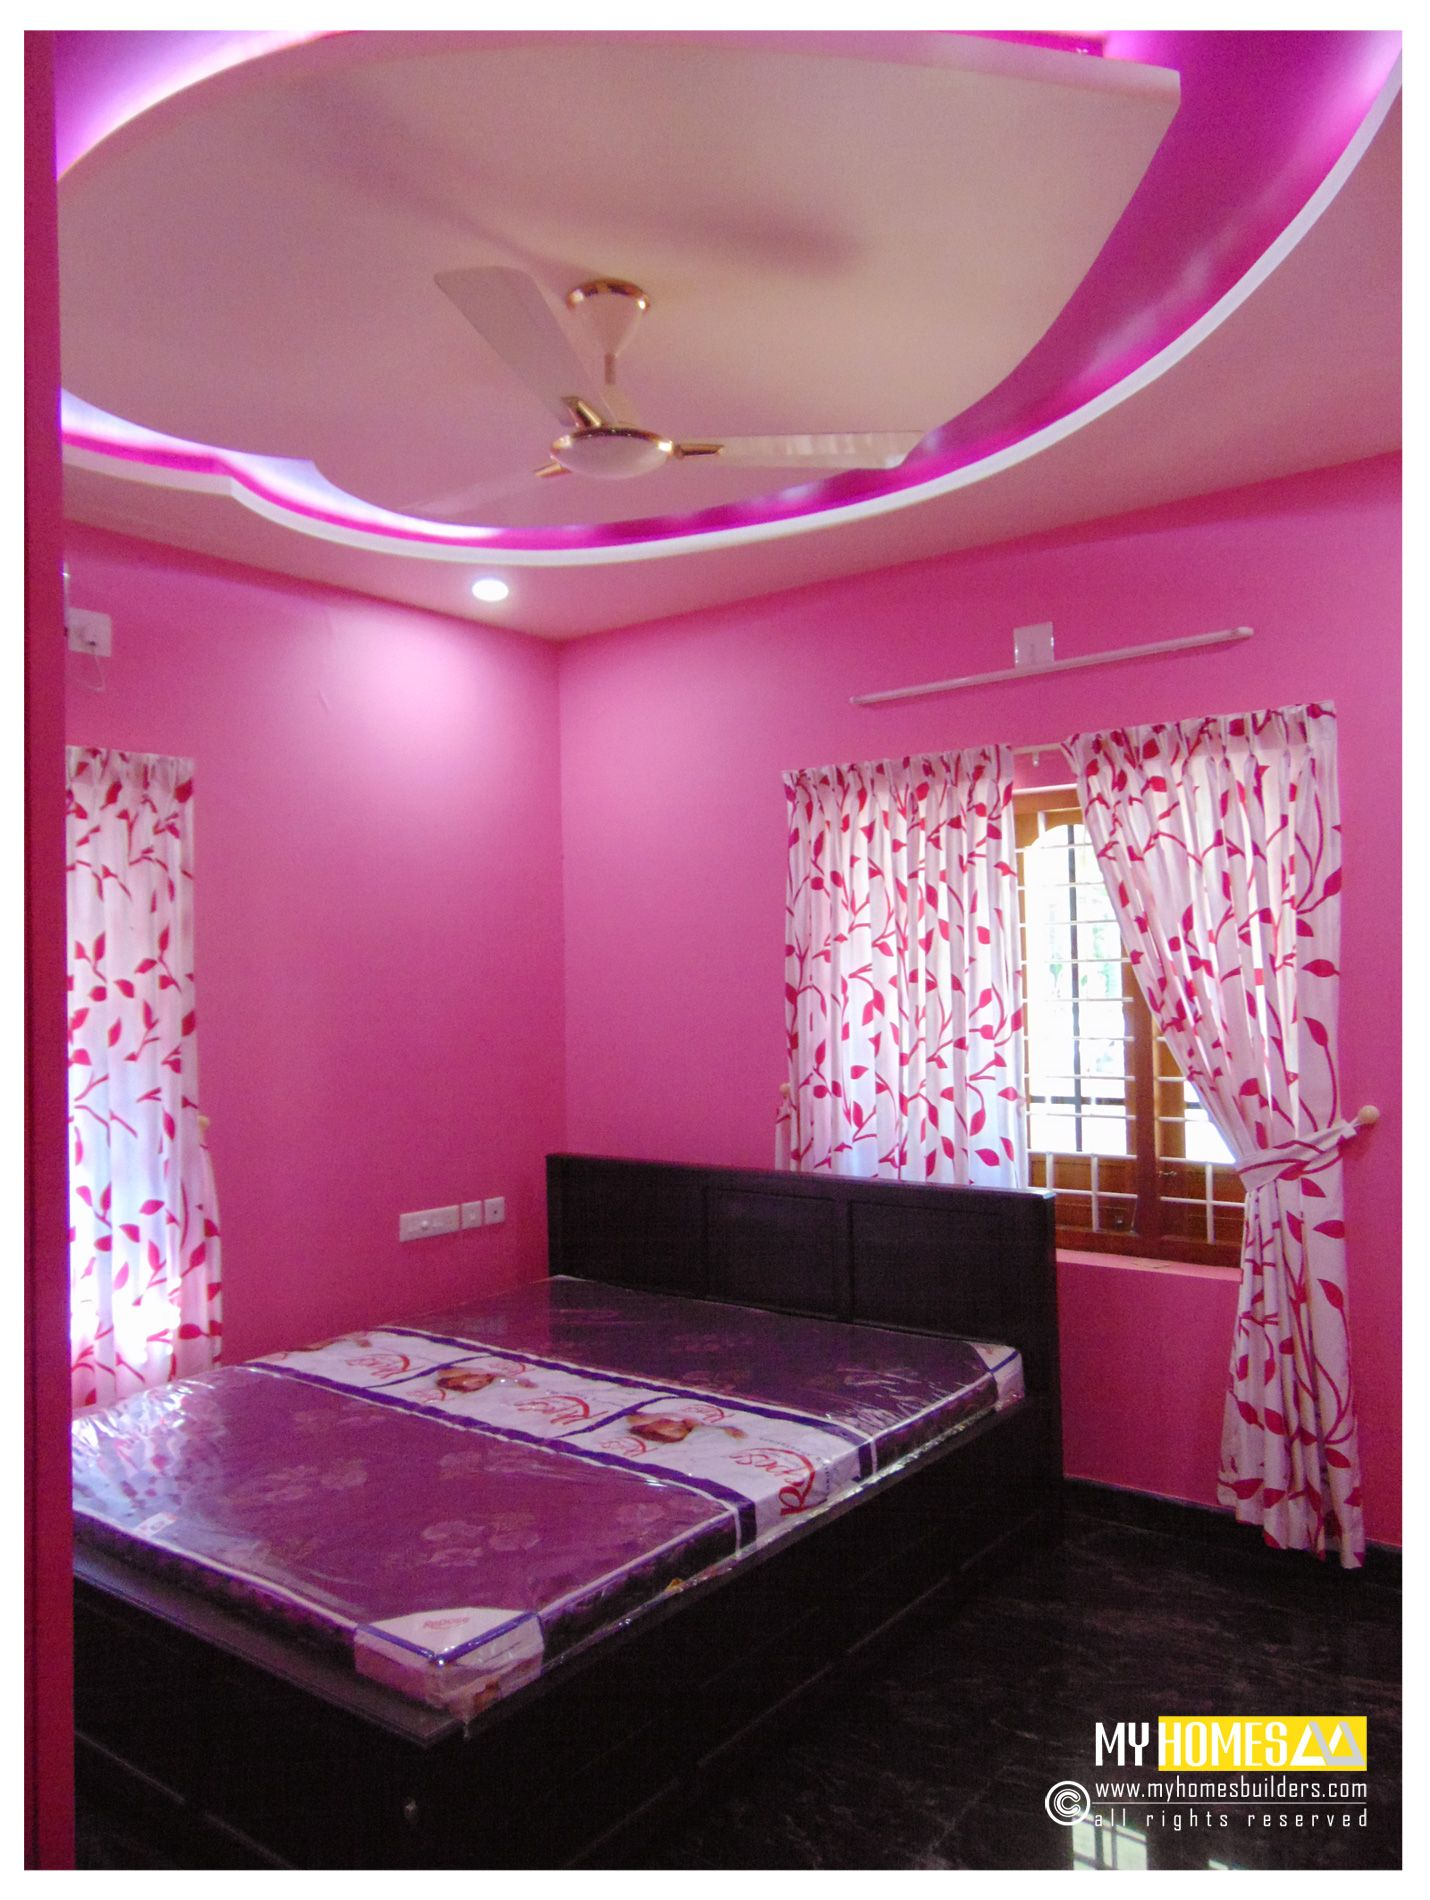 Kerala bedroom interior designs best bed room interior for Bedroom painting ideas india